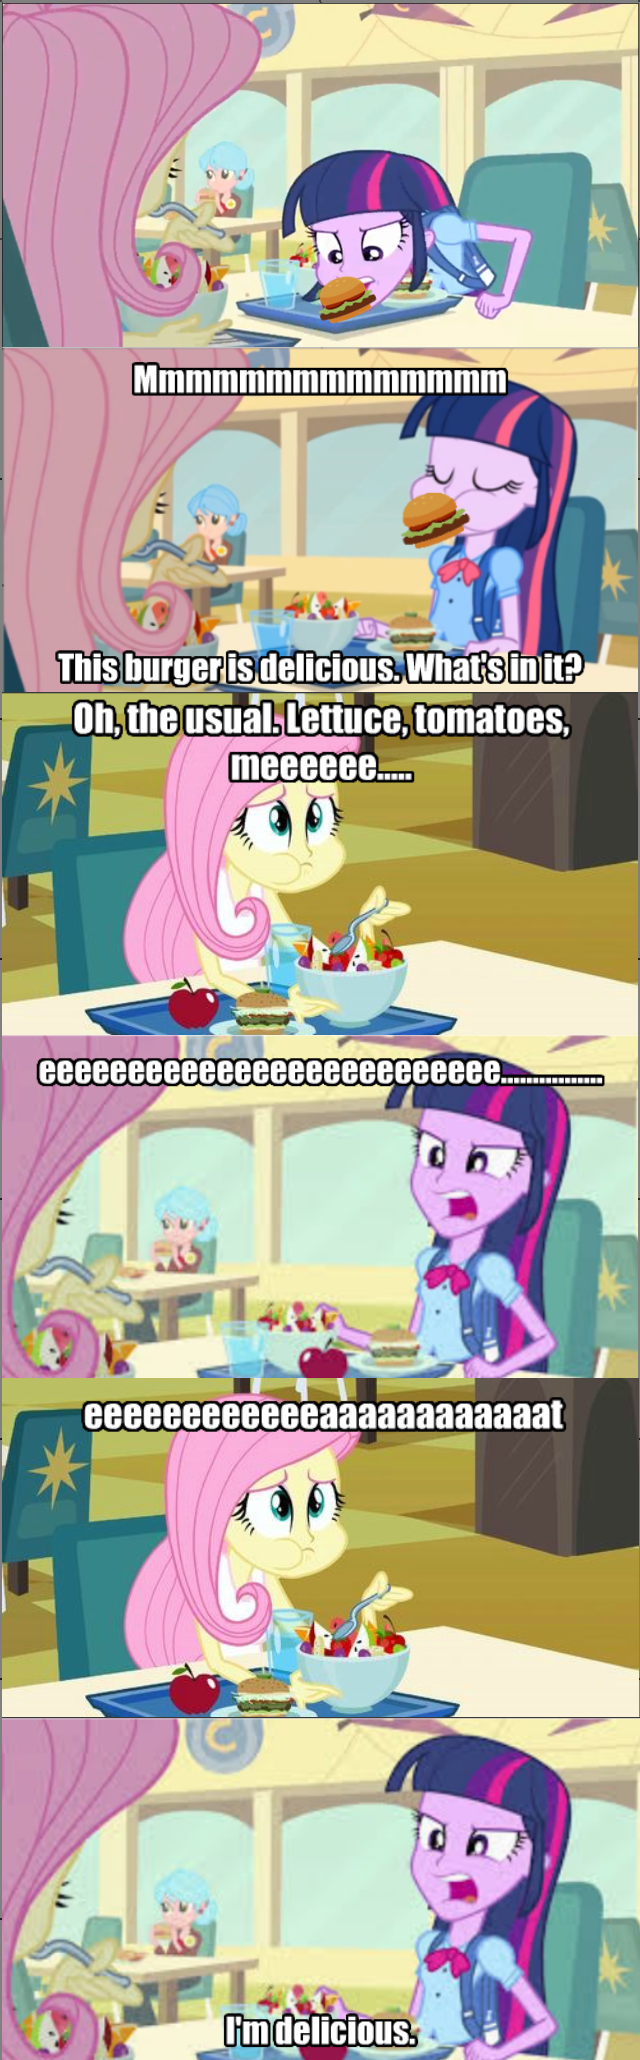 twilight sparkle vegetarian fluttershy - 8563747072